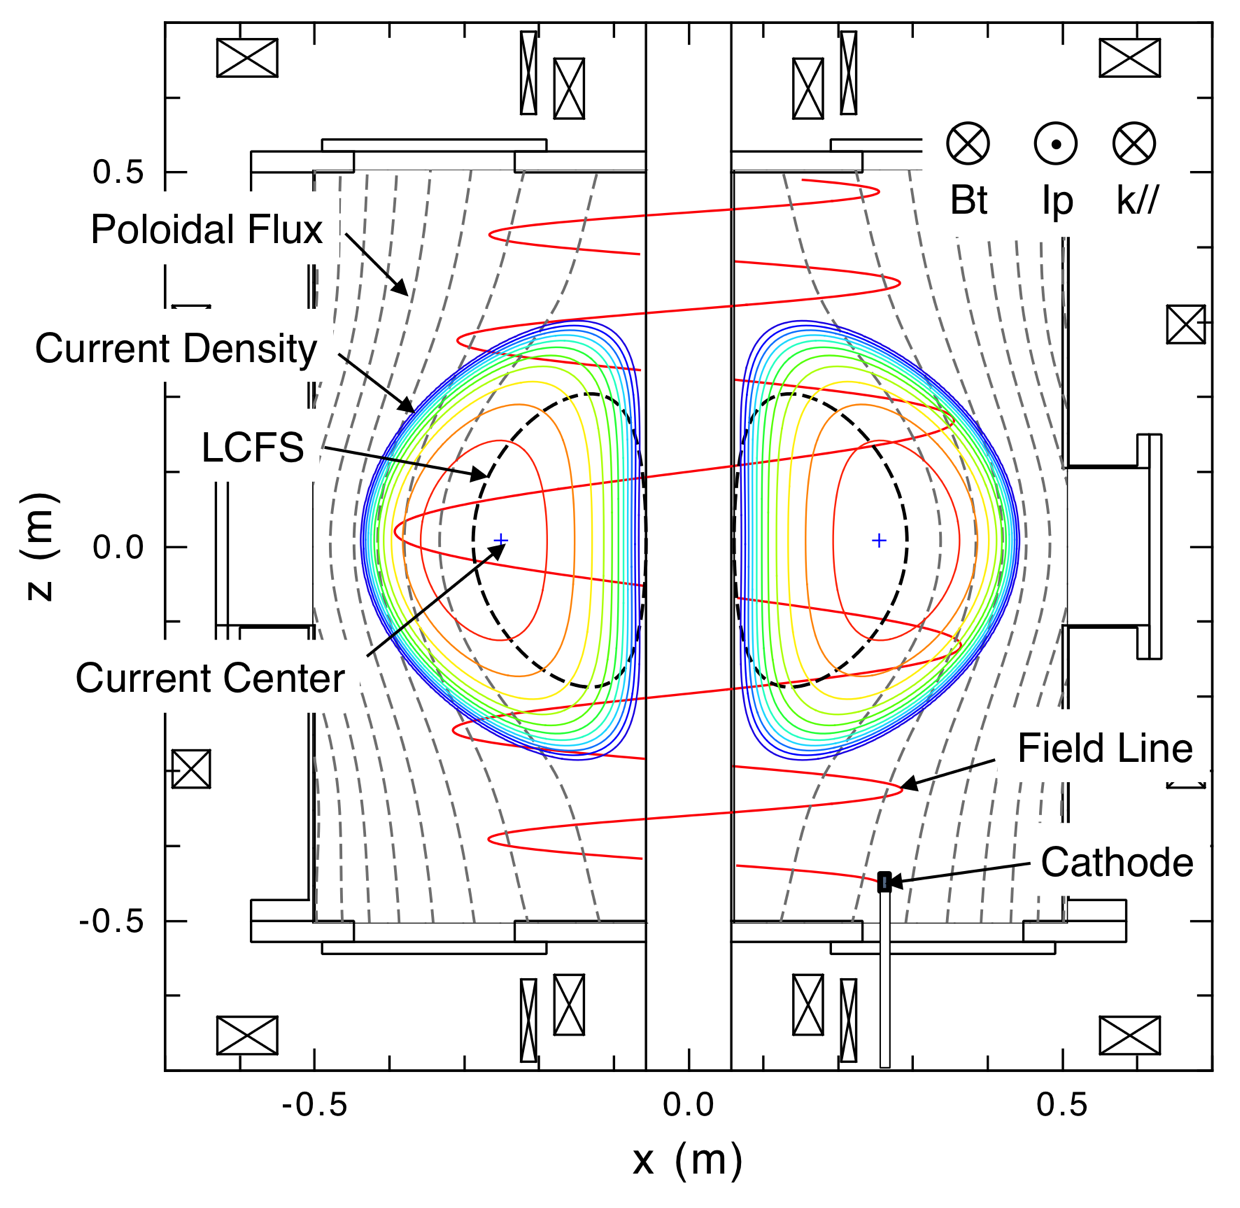 Directions of toroidal field, $B_t$ plasma current $I_p$ and parallel wave number $k_{//}$, the position of the cathode head, contour plots of plasma current density and poloidal flux measured at $t = 0.1703$ sec in the shot shown in Fig. 2. The magnetic field line which starts from the center of the cathode head is shown by a red line.